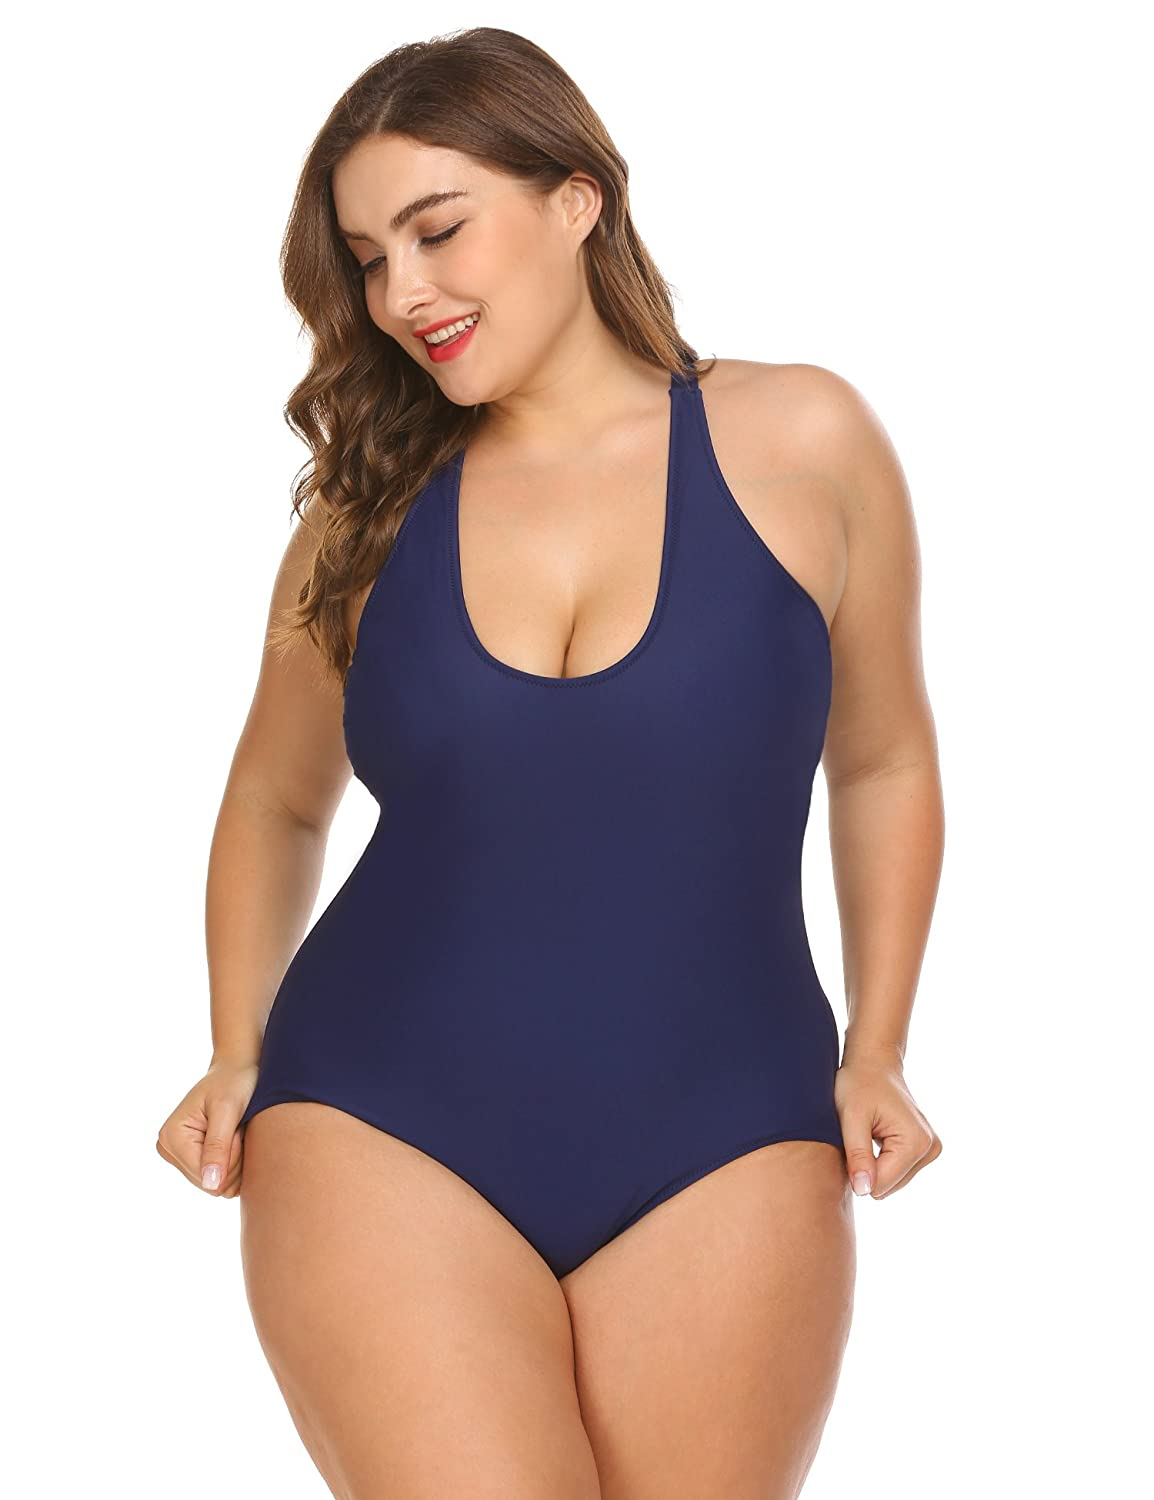 a79f439f93b4d Blenko Women s Plus Size Sexy Padded One Piece Swimsuit Cross Strap  Backless Solid Monokini Bathing Suit XL-5XL